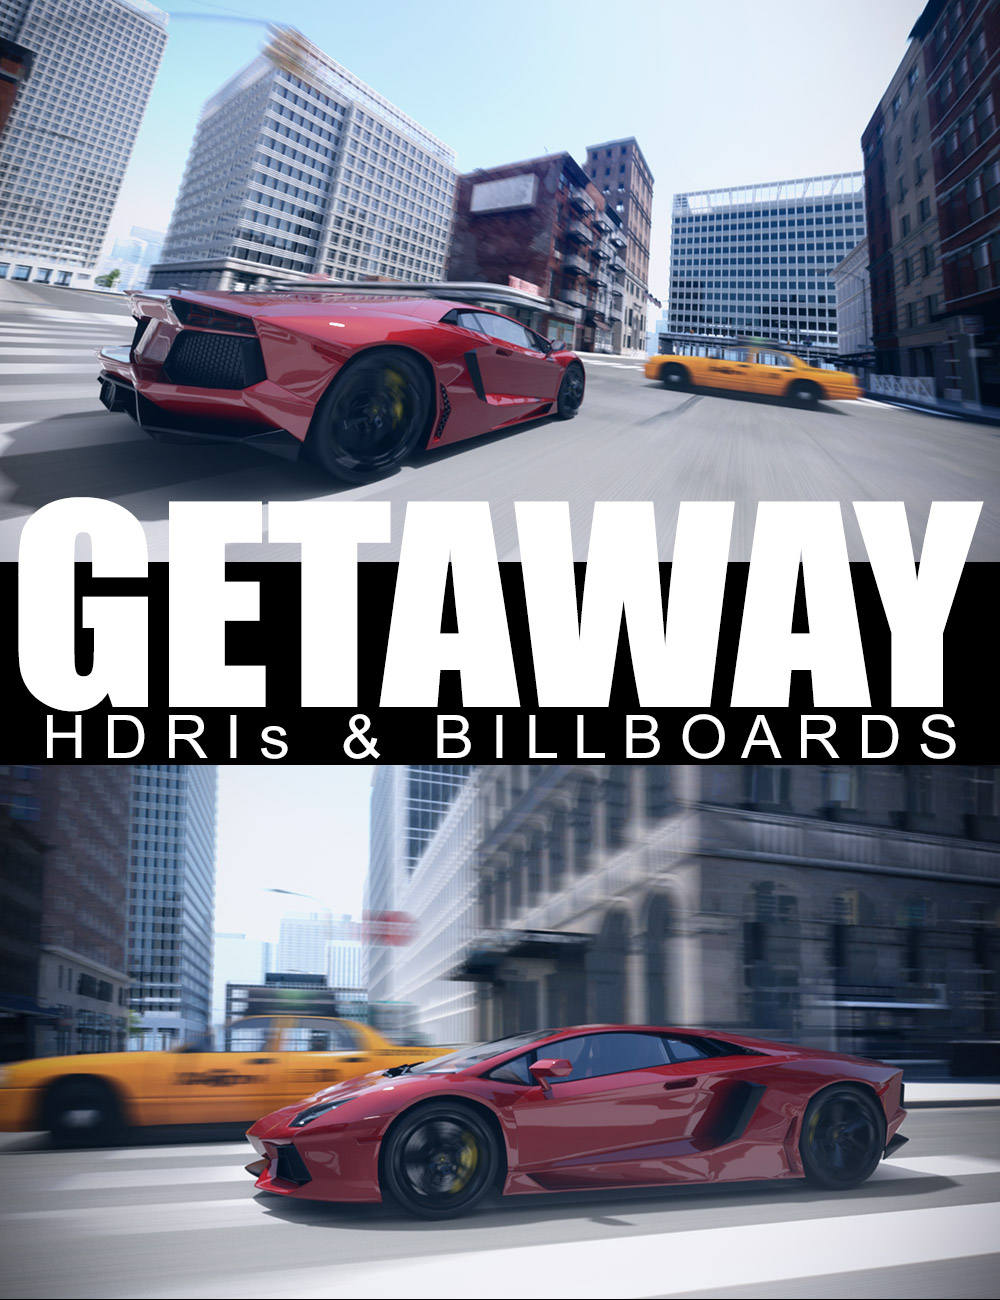 Getaway - HDRIs and Billboards by: Dreamlight, 3D Models by Daz 3D